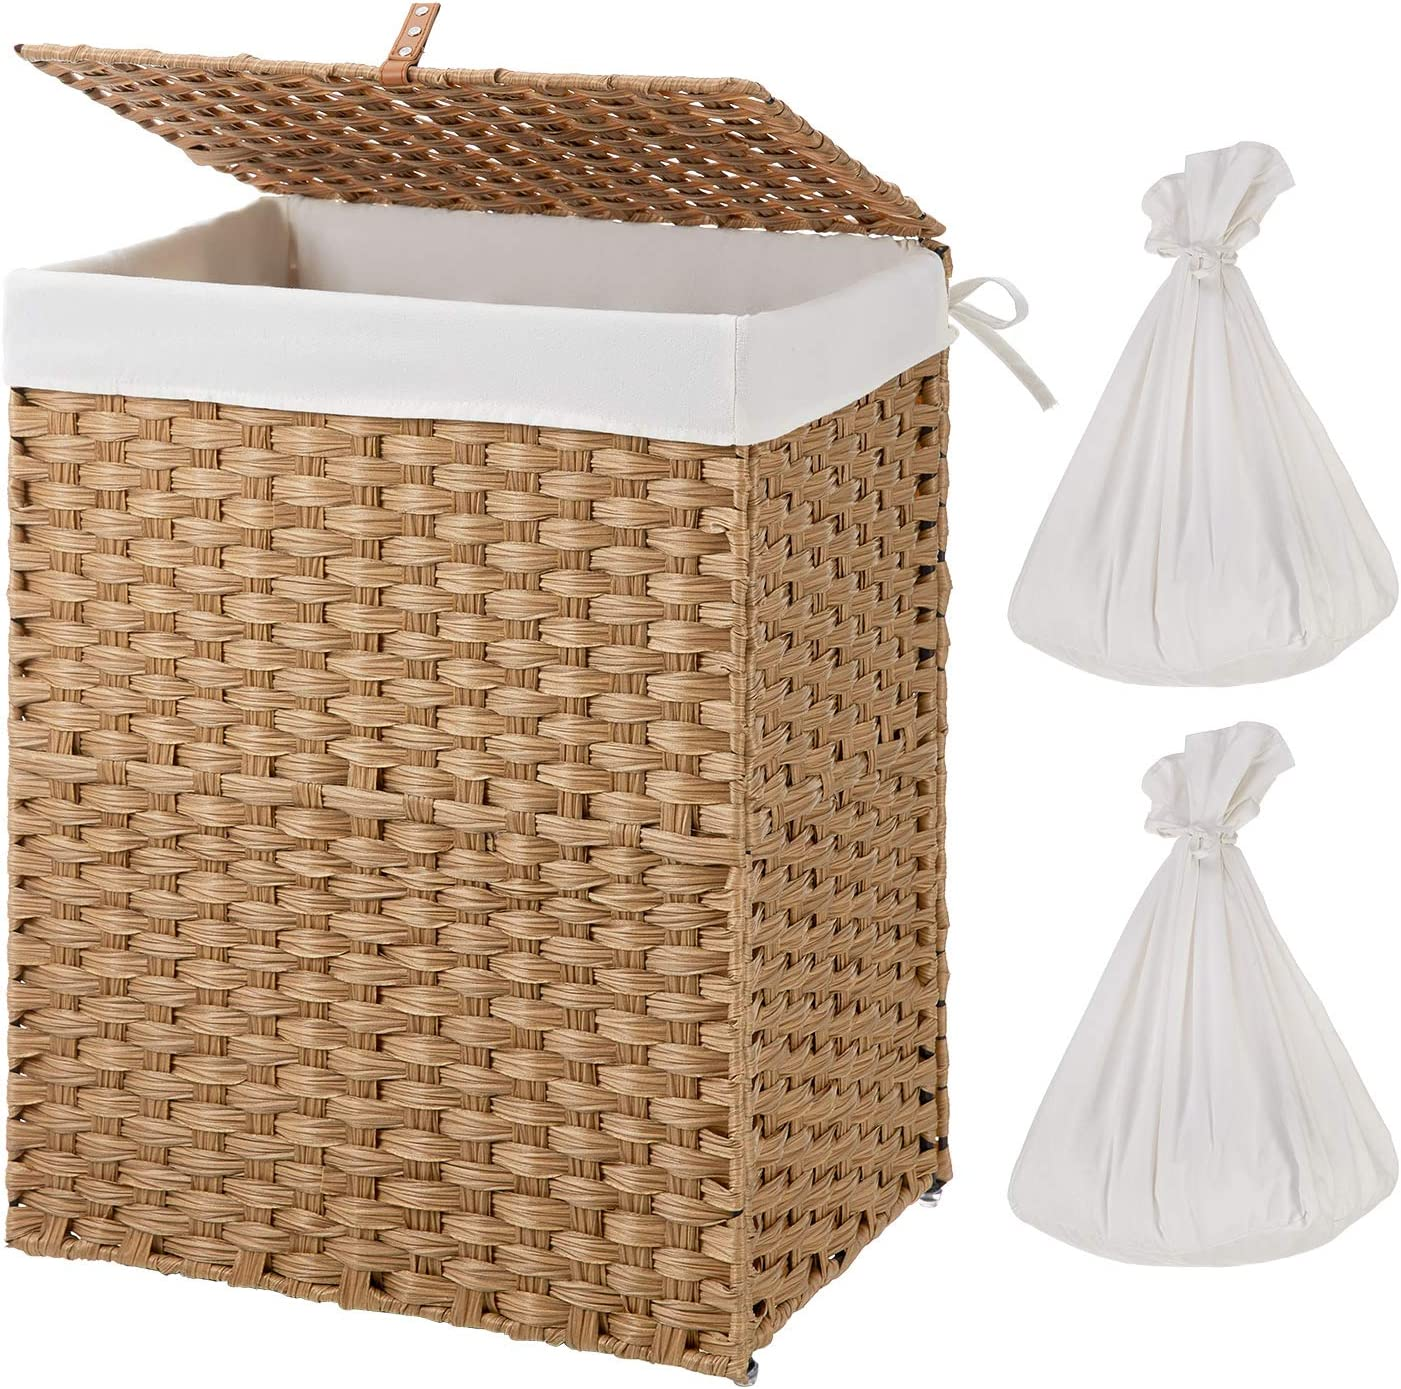 Greenstell Handwoven Laundry Hamper with 2 Removable Liner Bag, Synthetic Rattan Laundry Basket with Lid and Handles, Foldable and Easy to Install Natural (Standard Size)